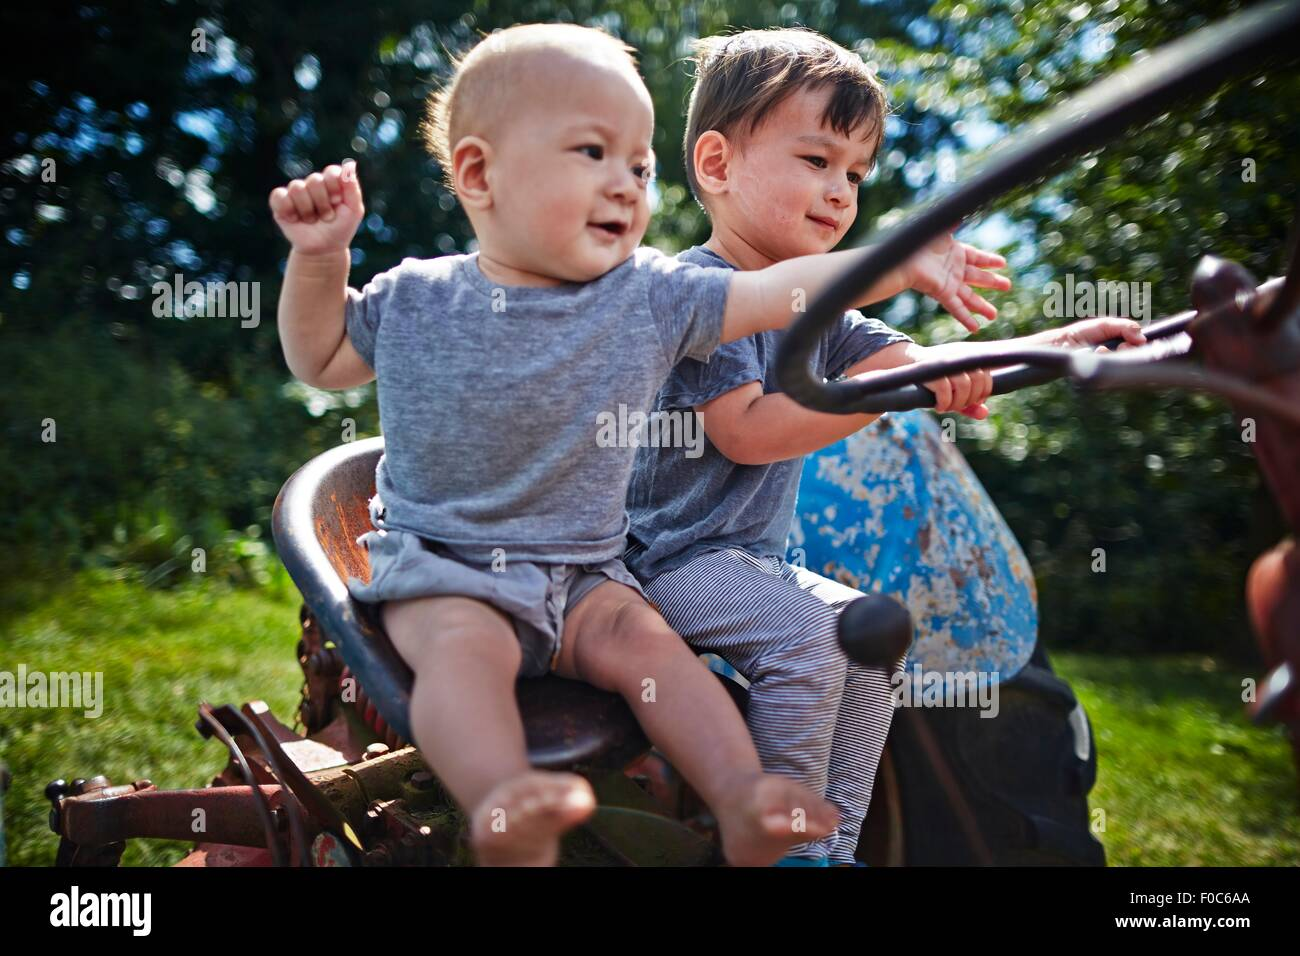 Baby boy and boy playing on old tractor Stock Photo